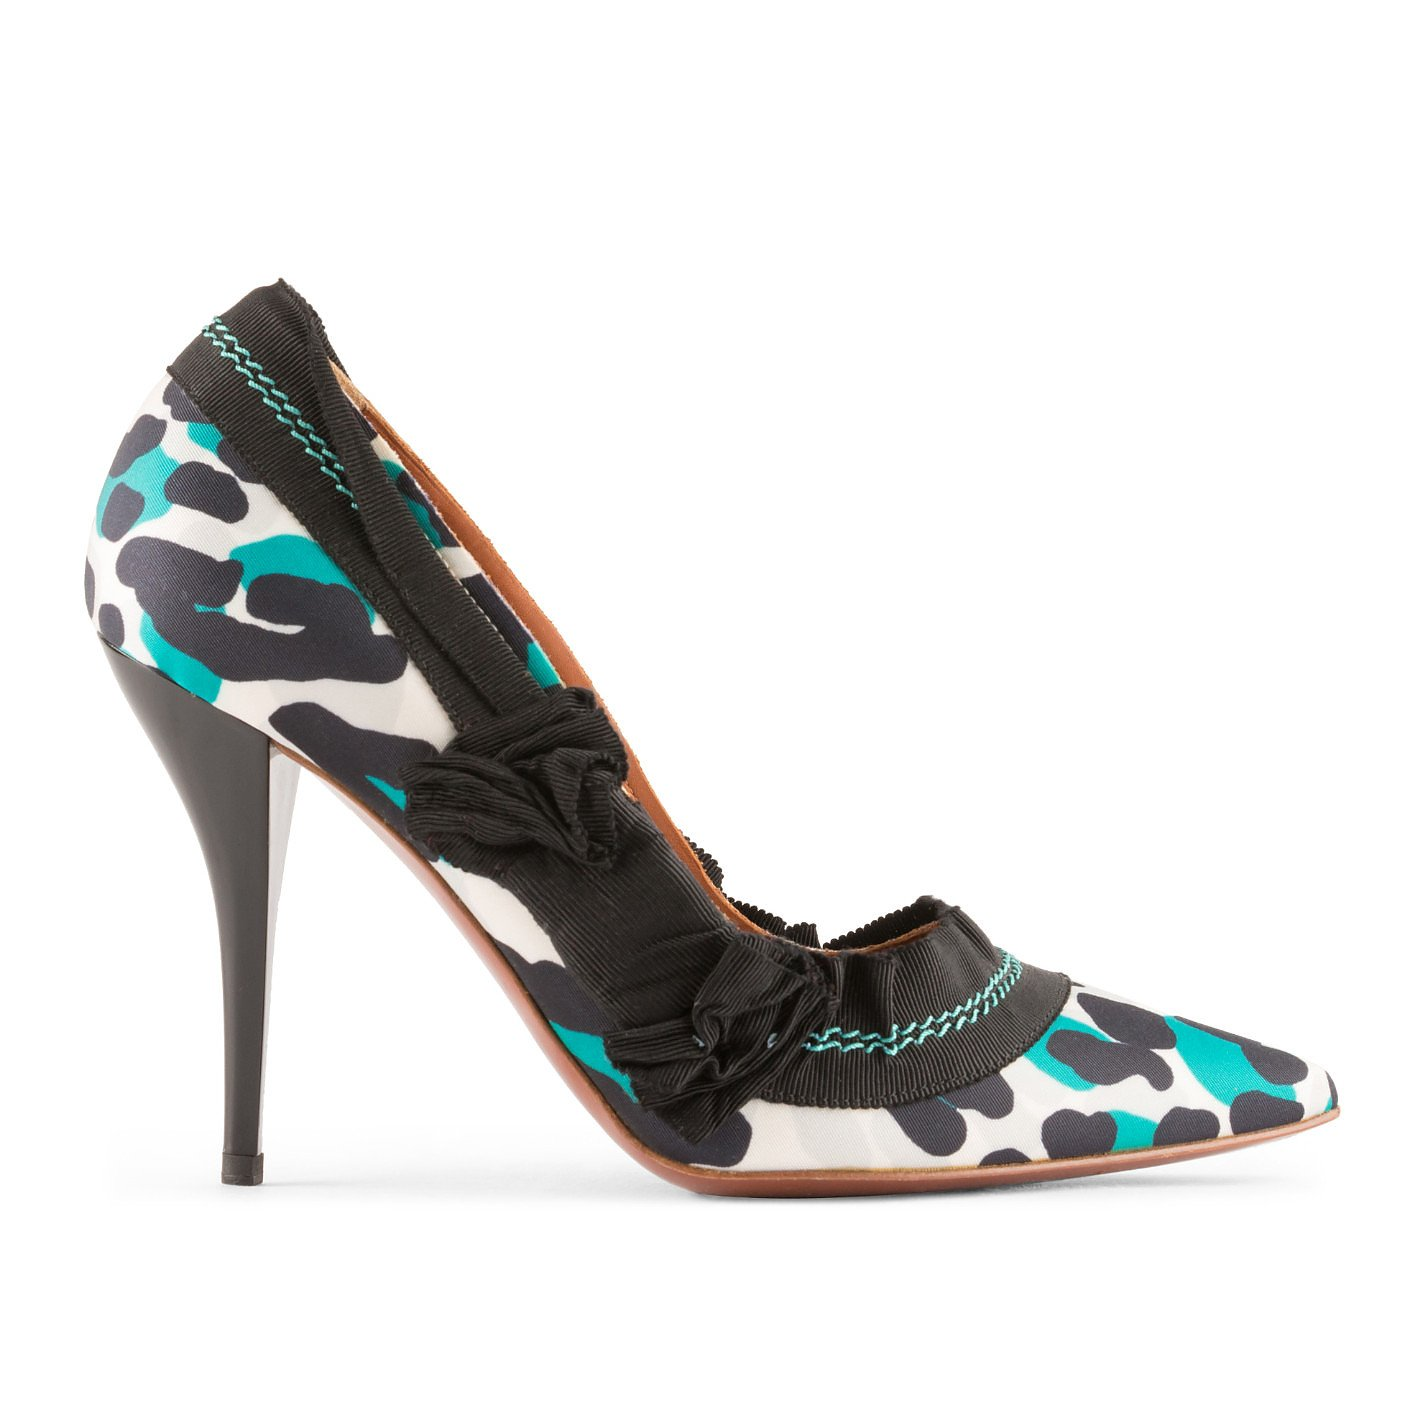 Lanvin Patterned Pumps